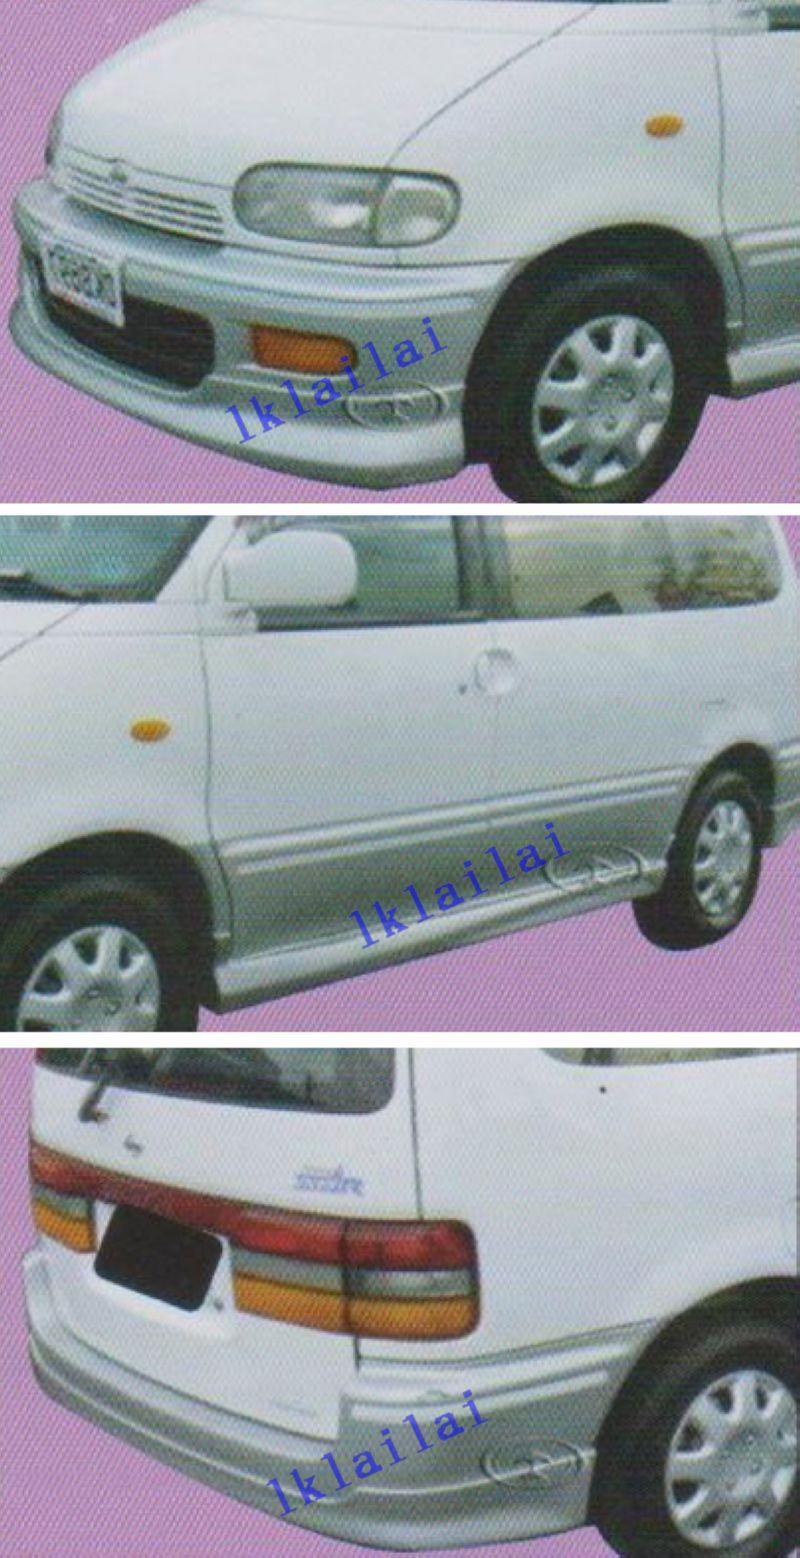 Nissan Serena '97 Full Set Body Kit [Fiber Material]